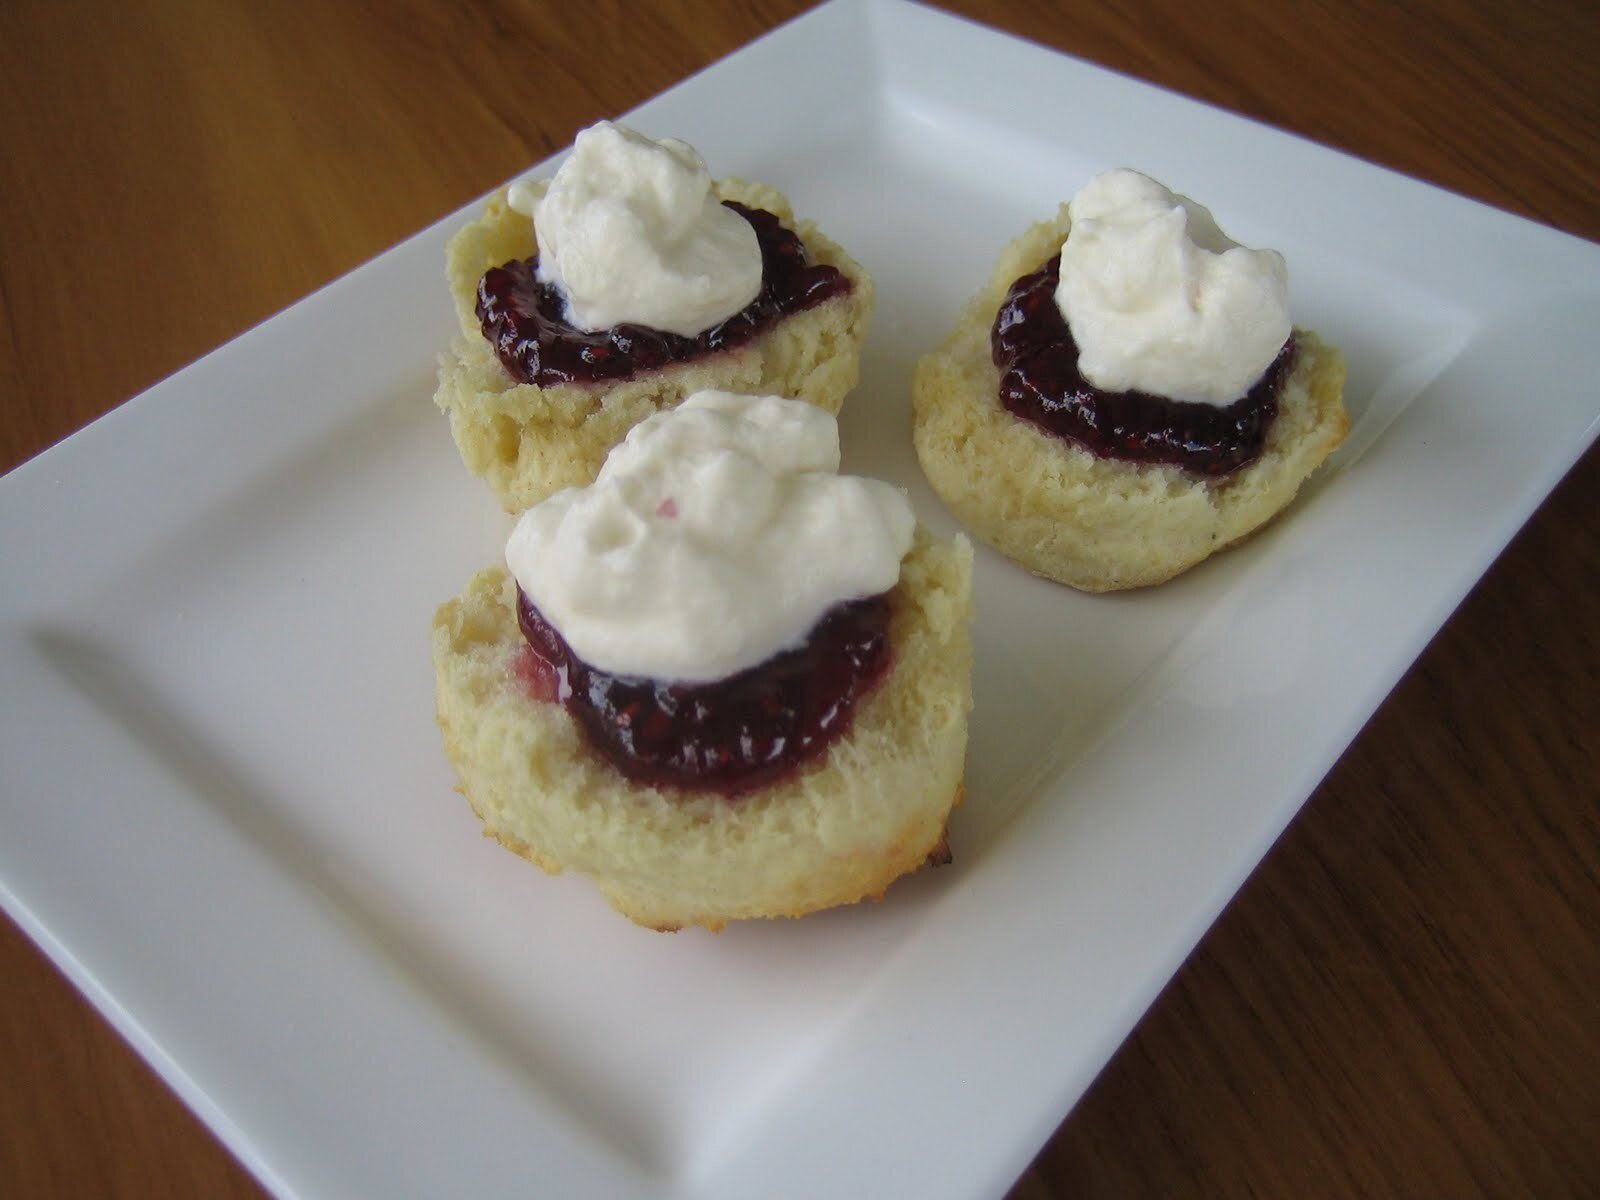 THE DARING BAKERS' JANUARY, 2012 CHALLENGE: BACK TO BASICS: SCONES (A.K.A. BISCUITS)